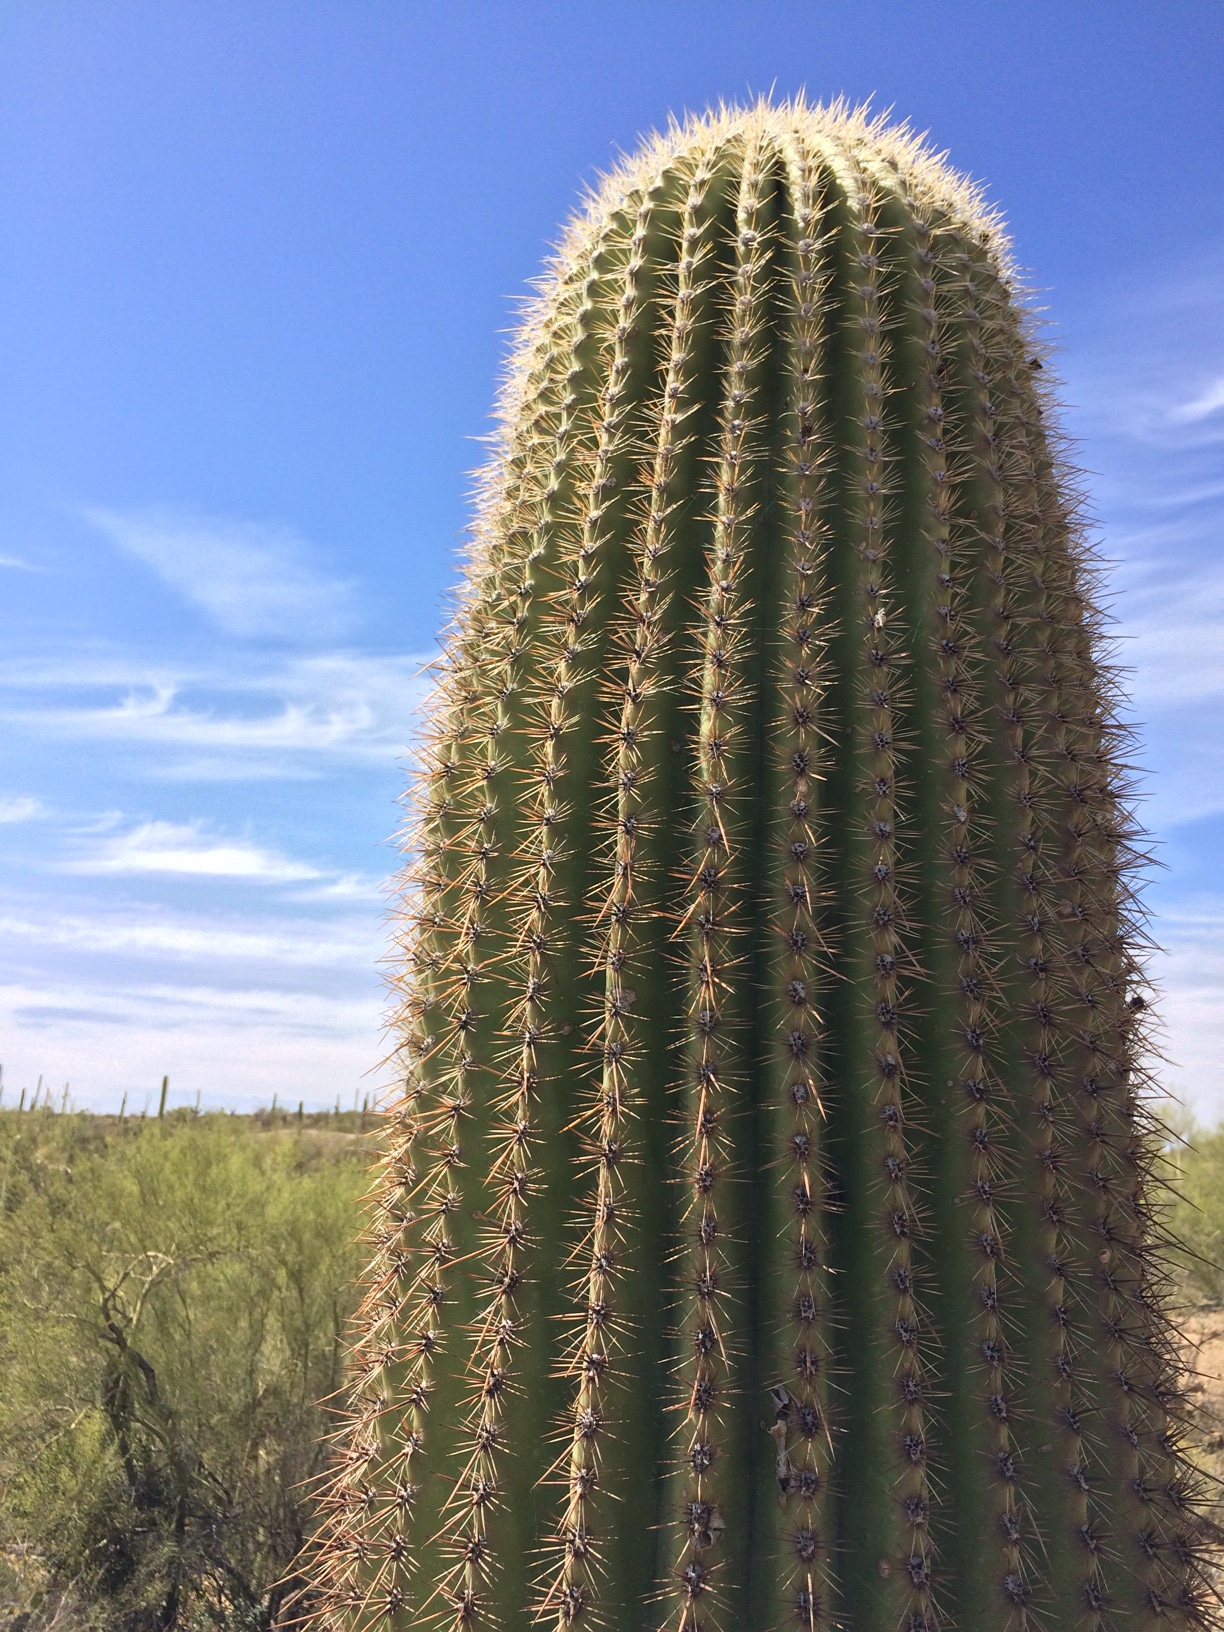 Up close cacti